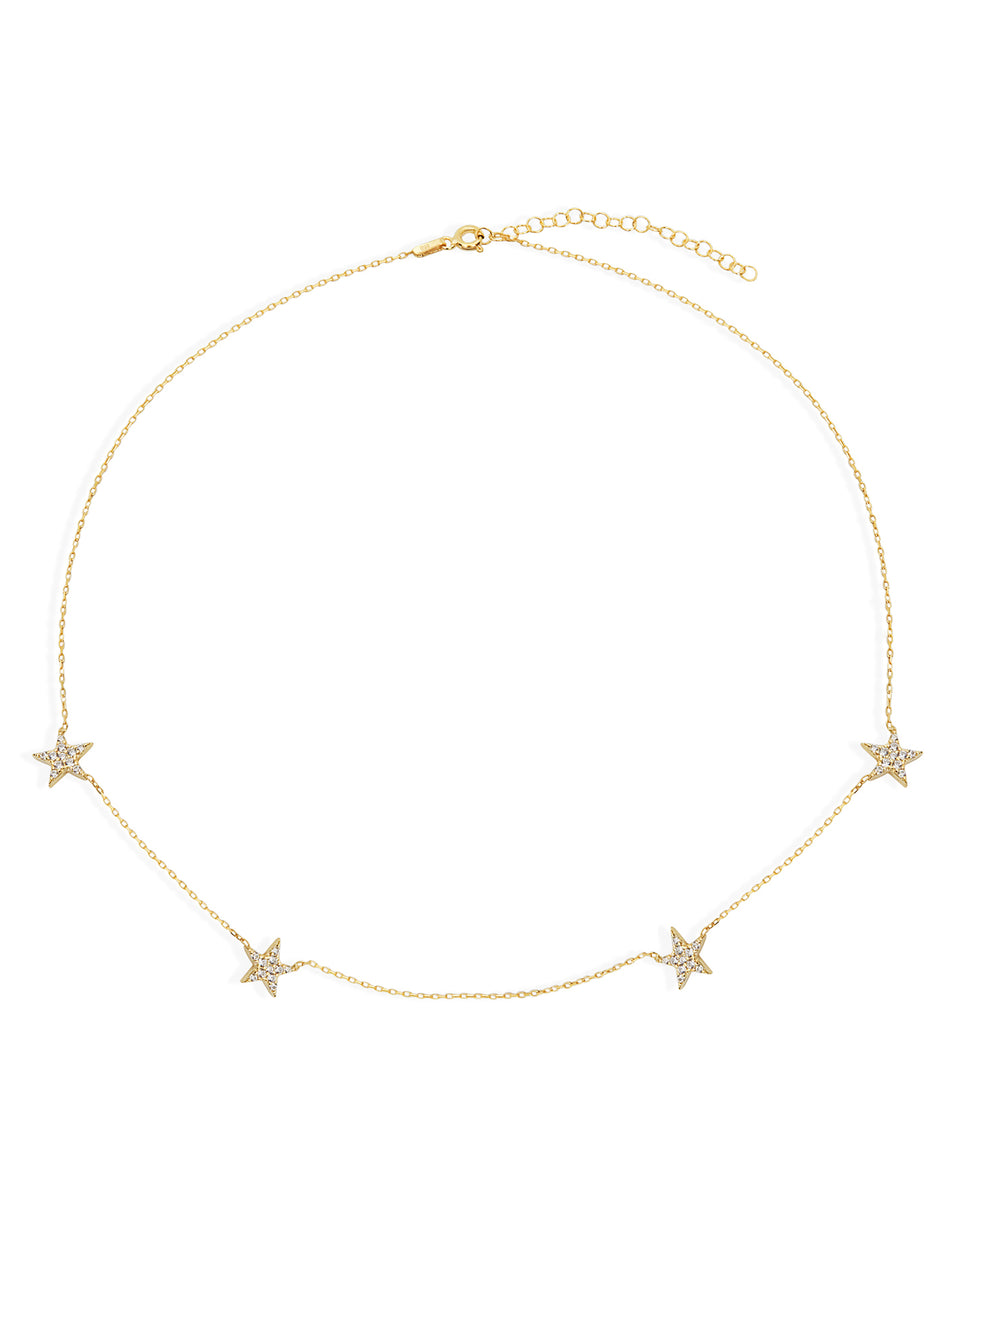 THE PAVE STAR NECKLACE